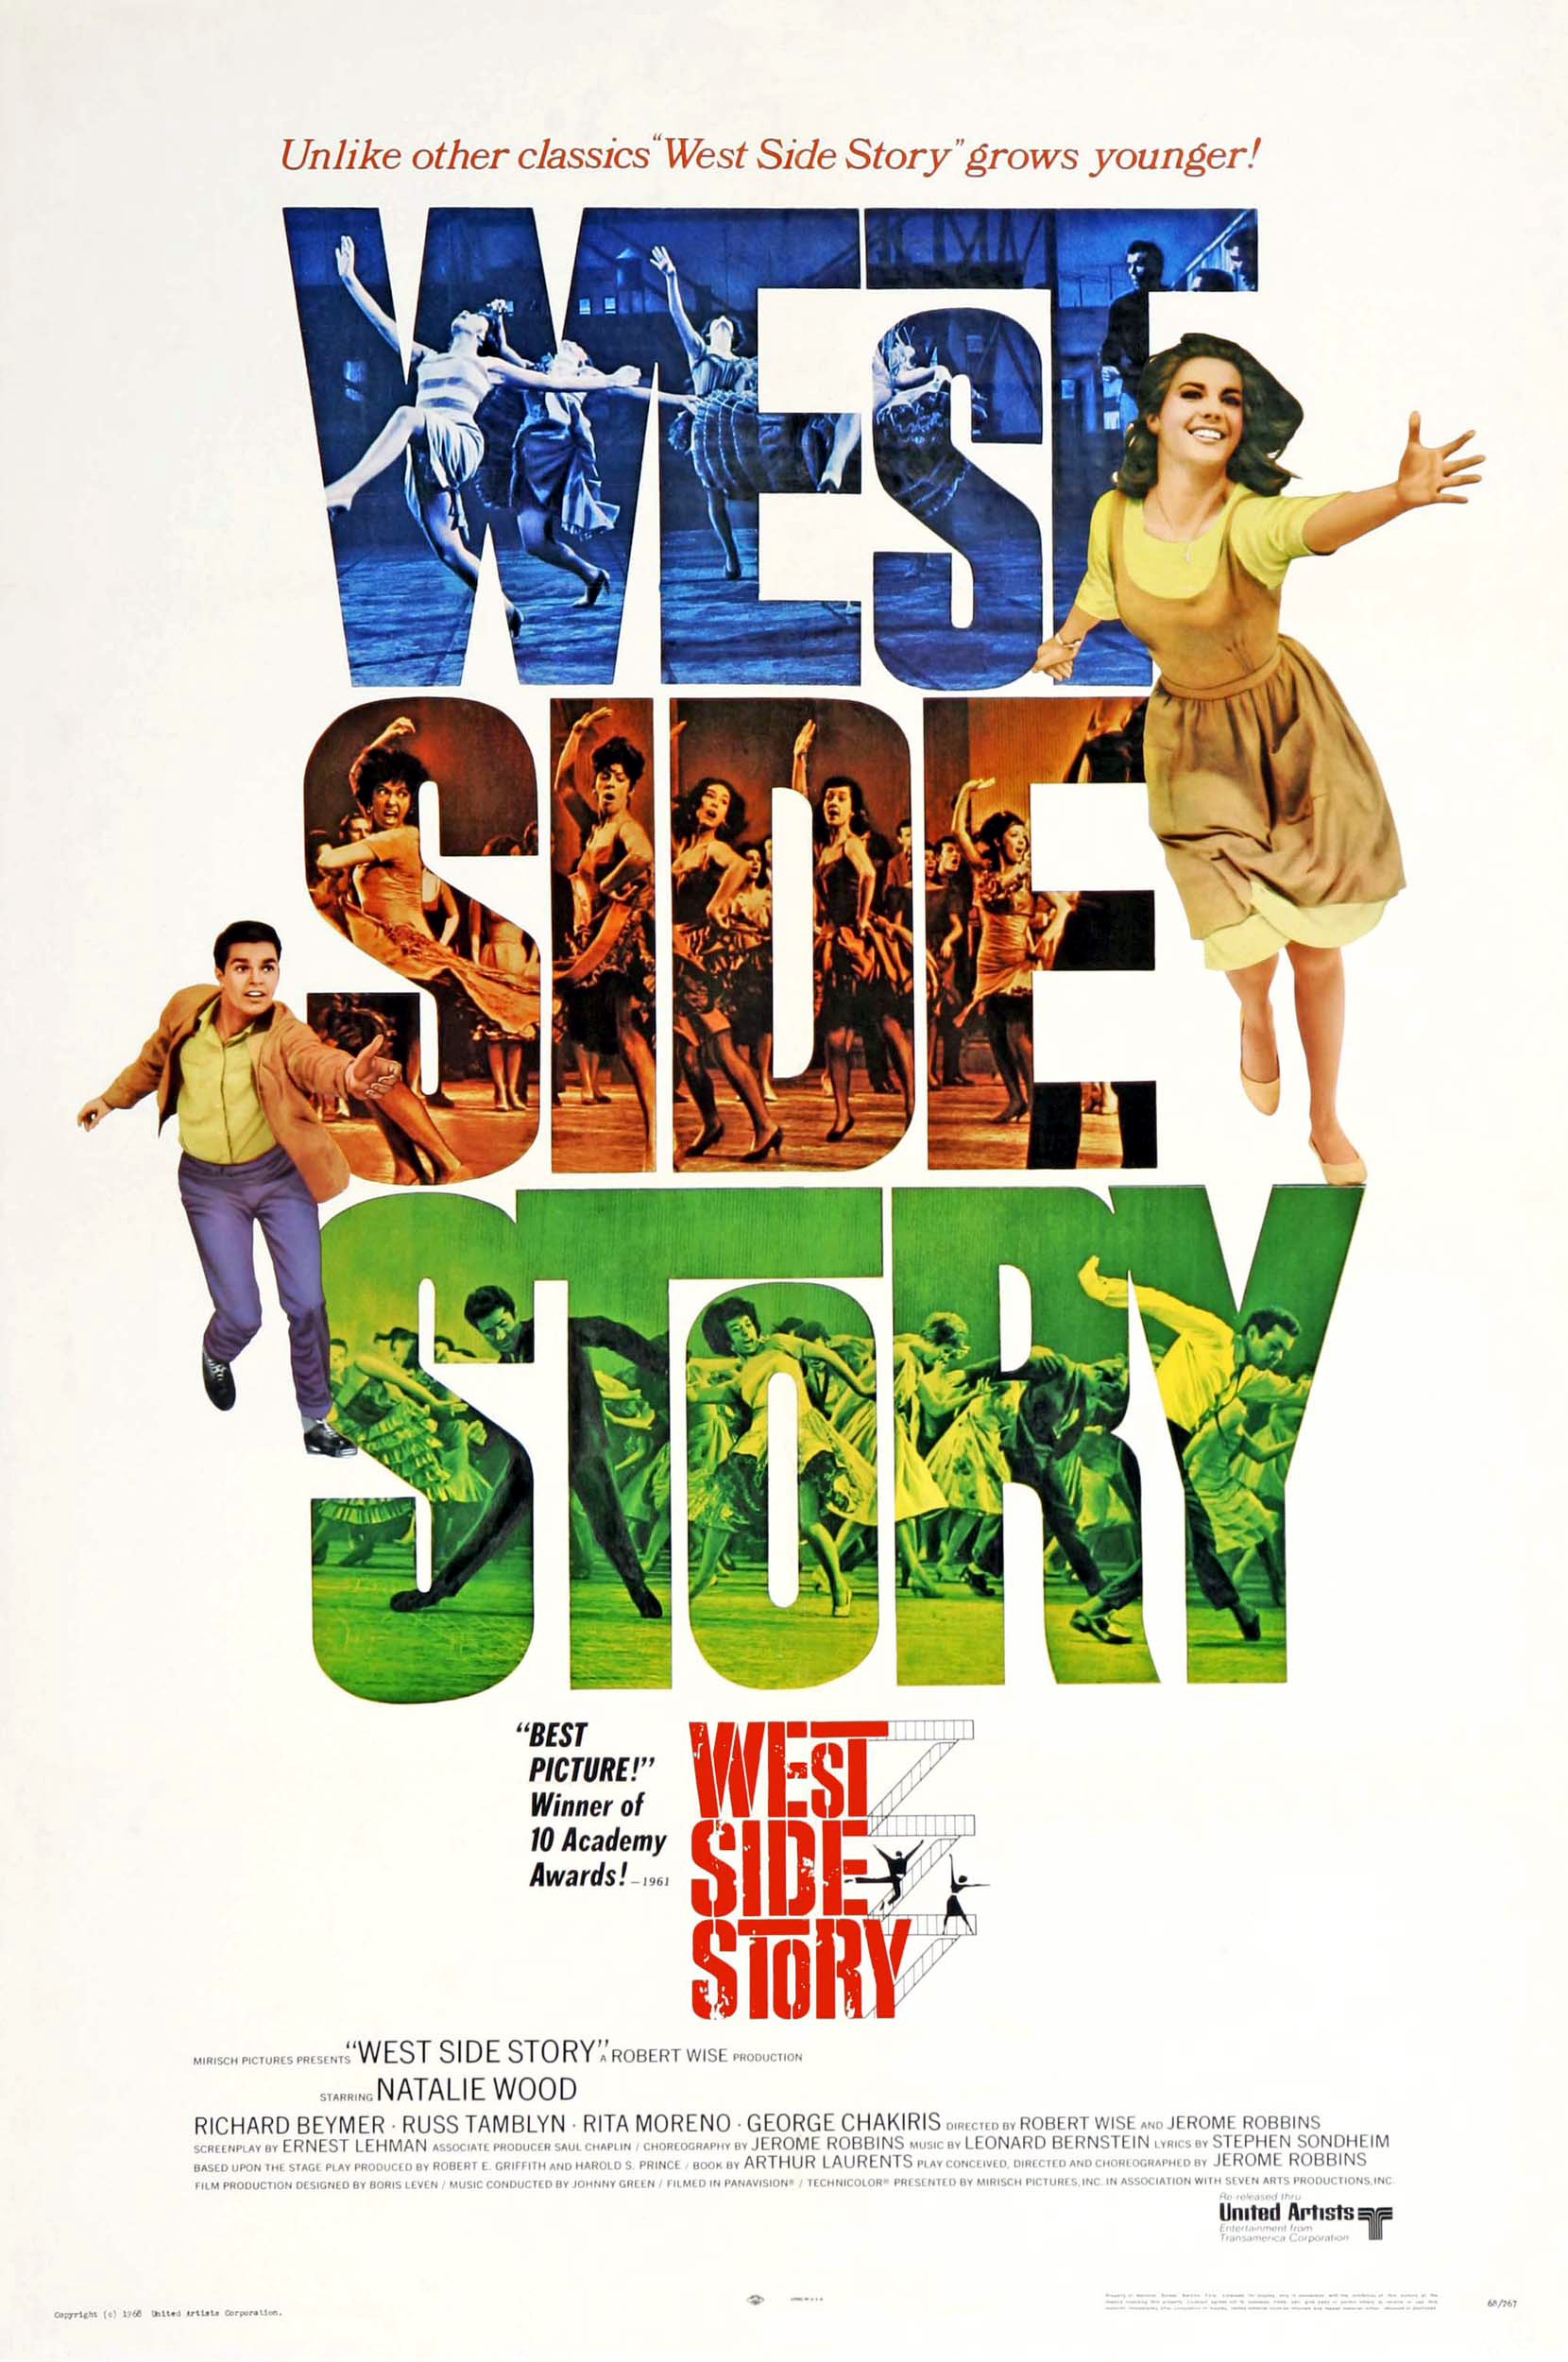 example of forbidden love in west side story